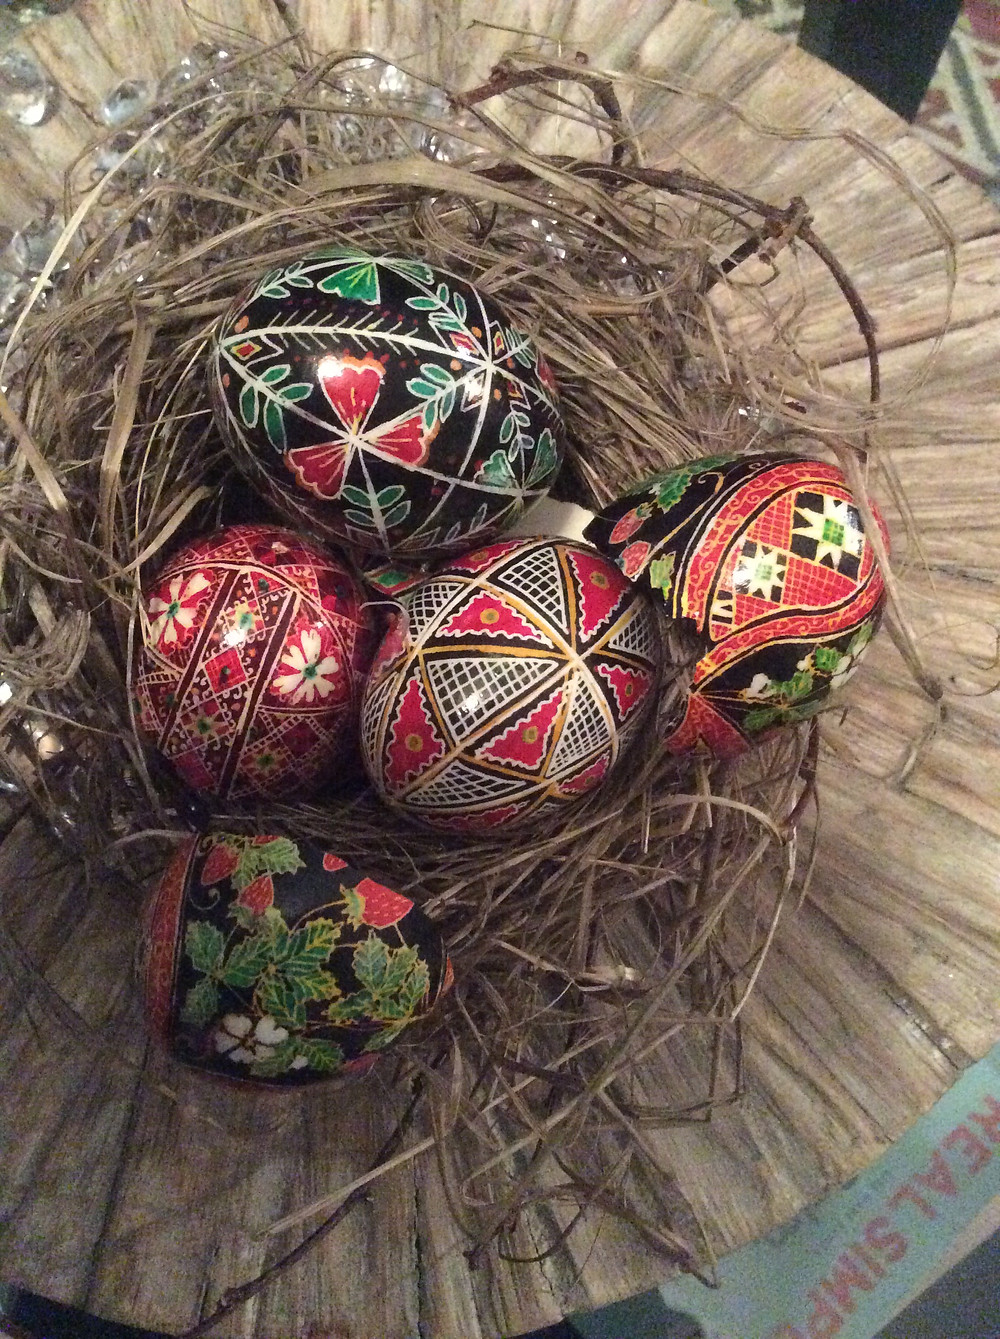 Some of my favorite Pysanky that I unfortunately broke!